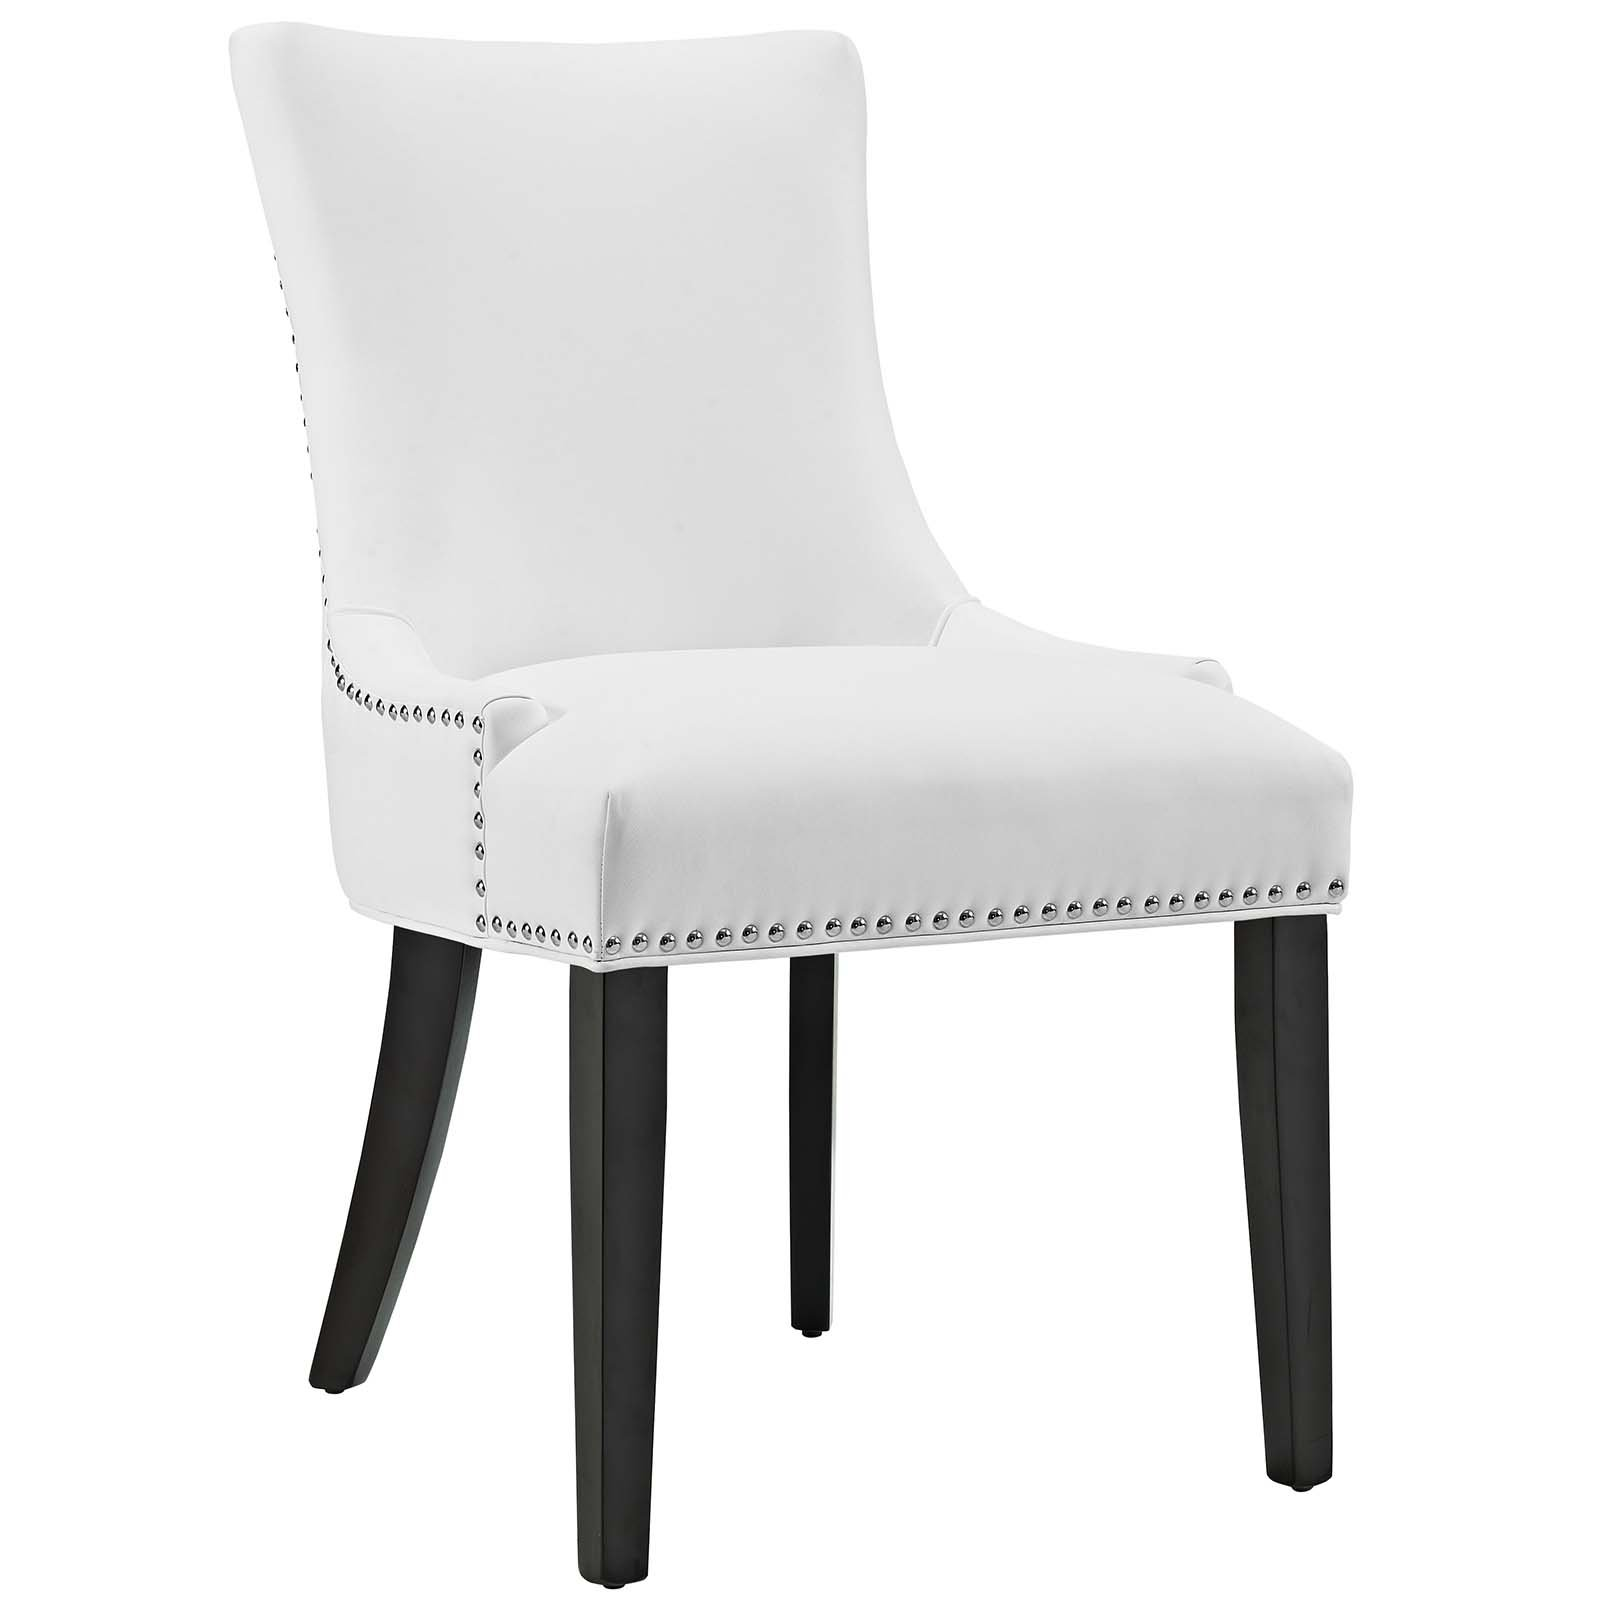 Modway Marquis Modern Elegant Upholstered Vinyl Parsons Dining Side Chair With Nailhead Trim And Wood Legs In White